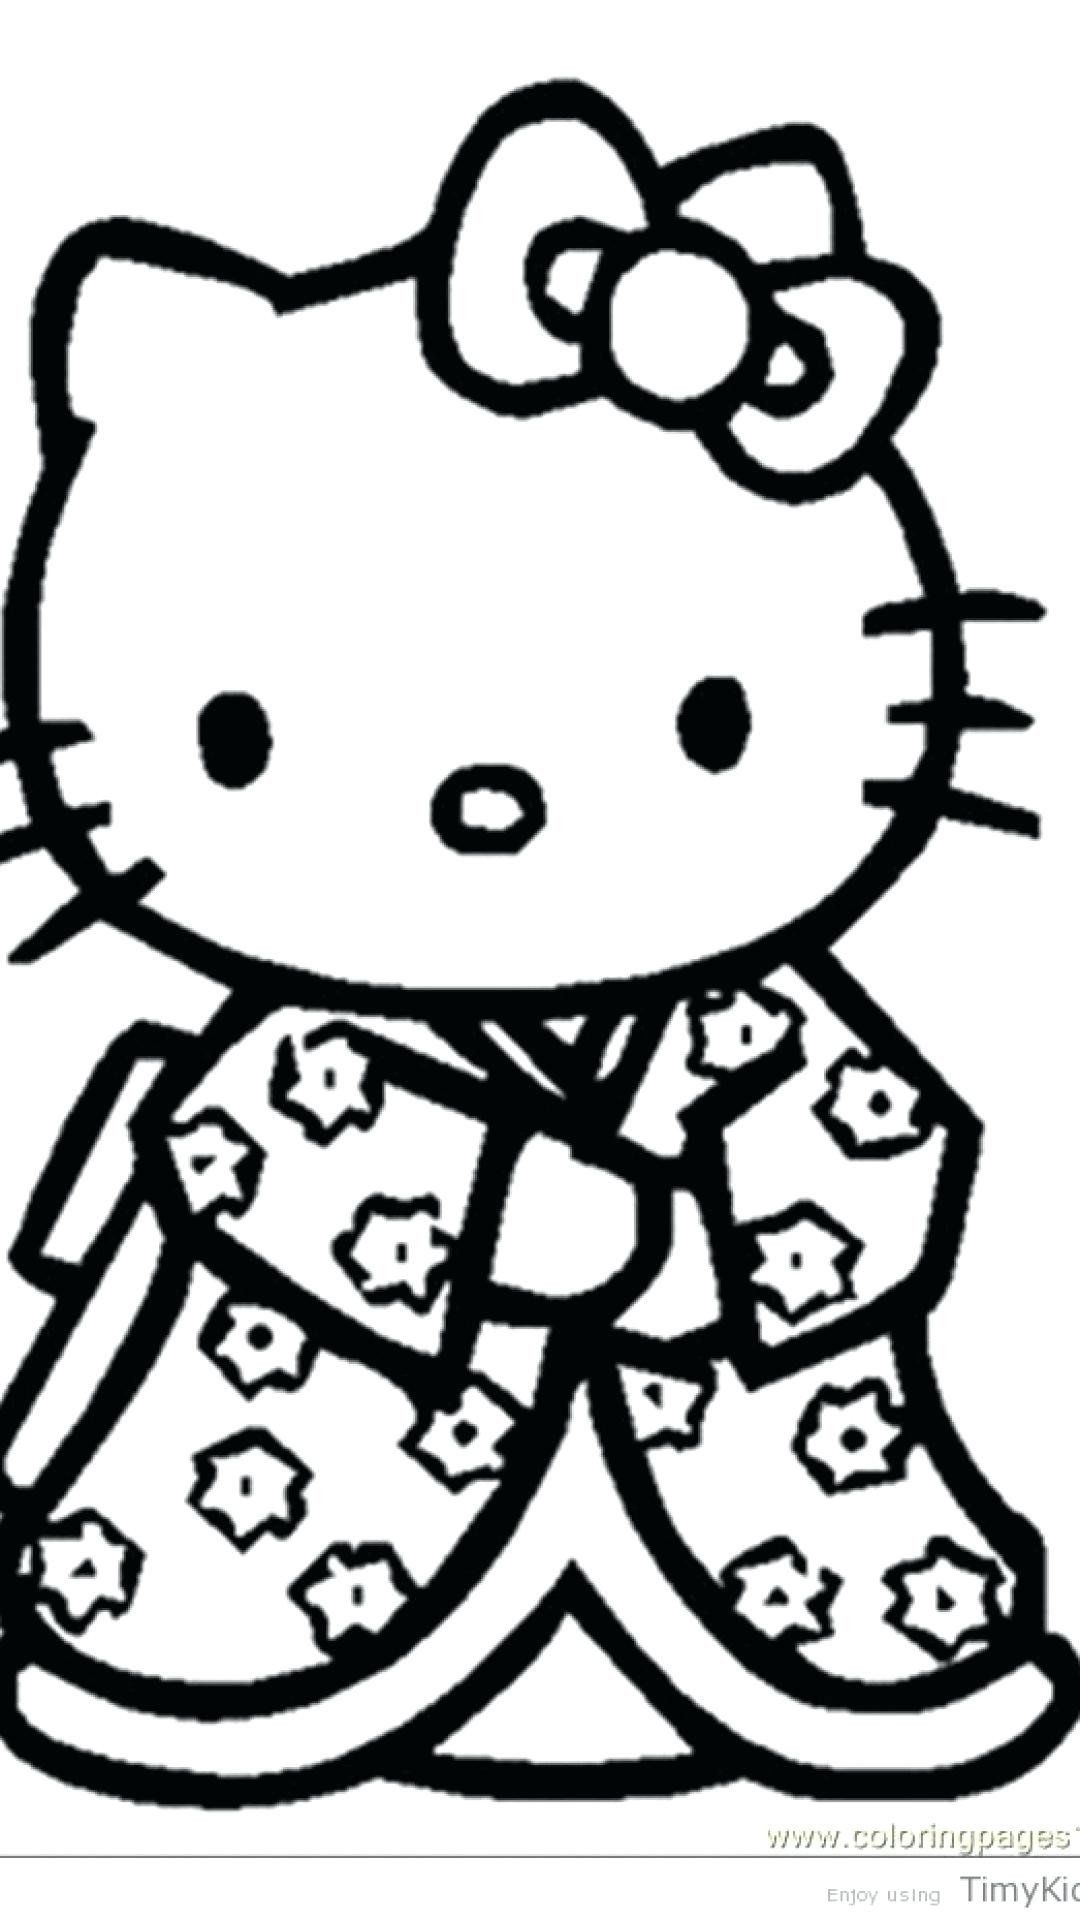 20 Hello Kitty Coloring Pages Free Printable Caitlin Gallagher Hello Kitty Coloring Hello Kitty Colouring Pages Cat Coloring Book